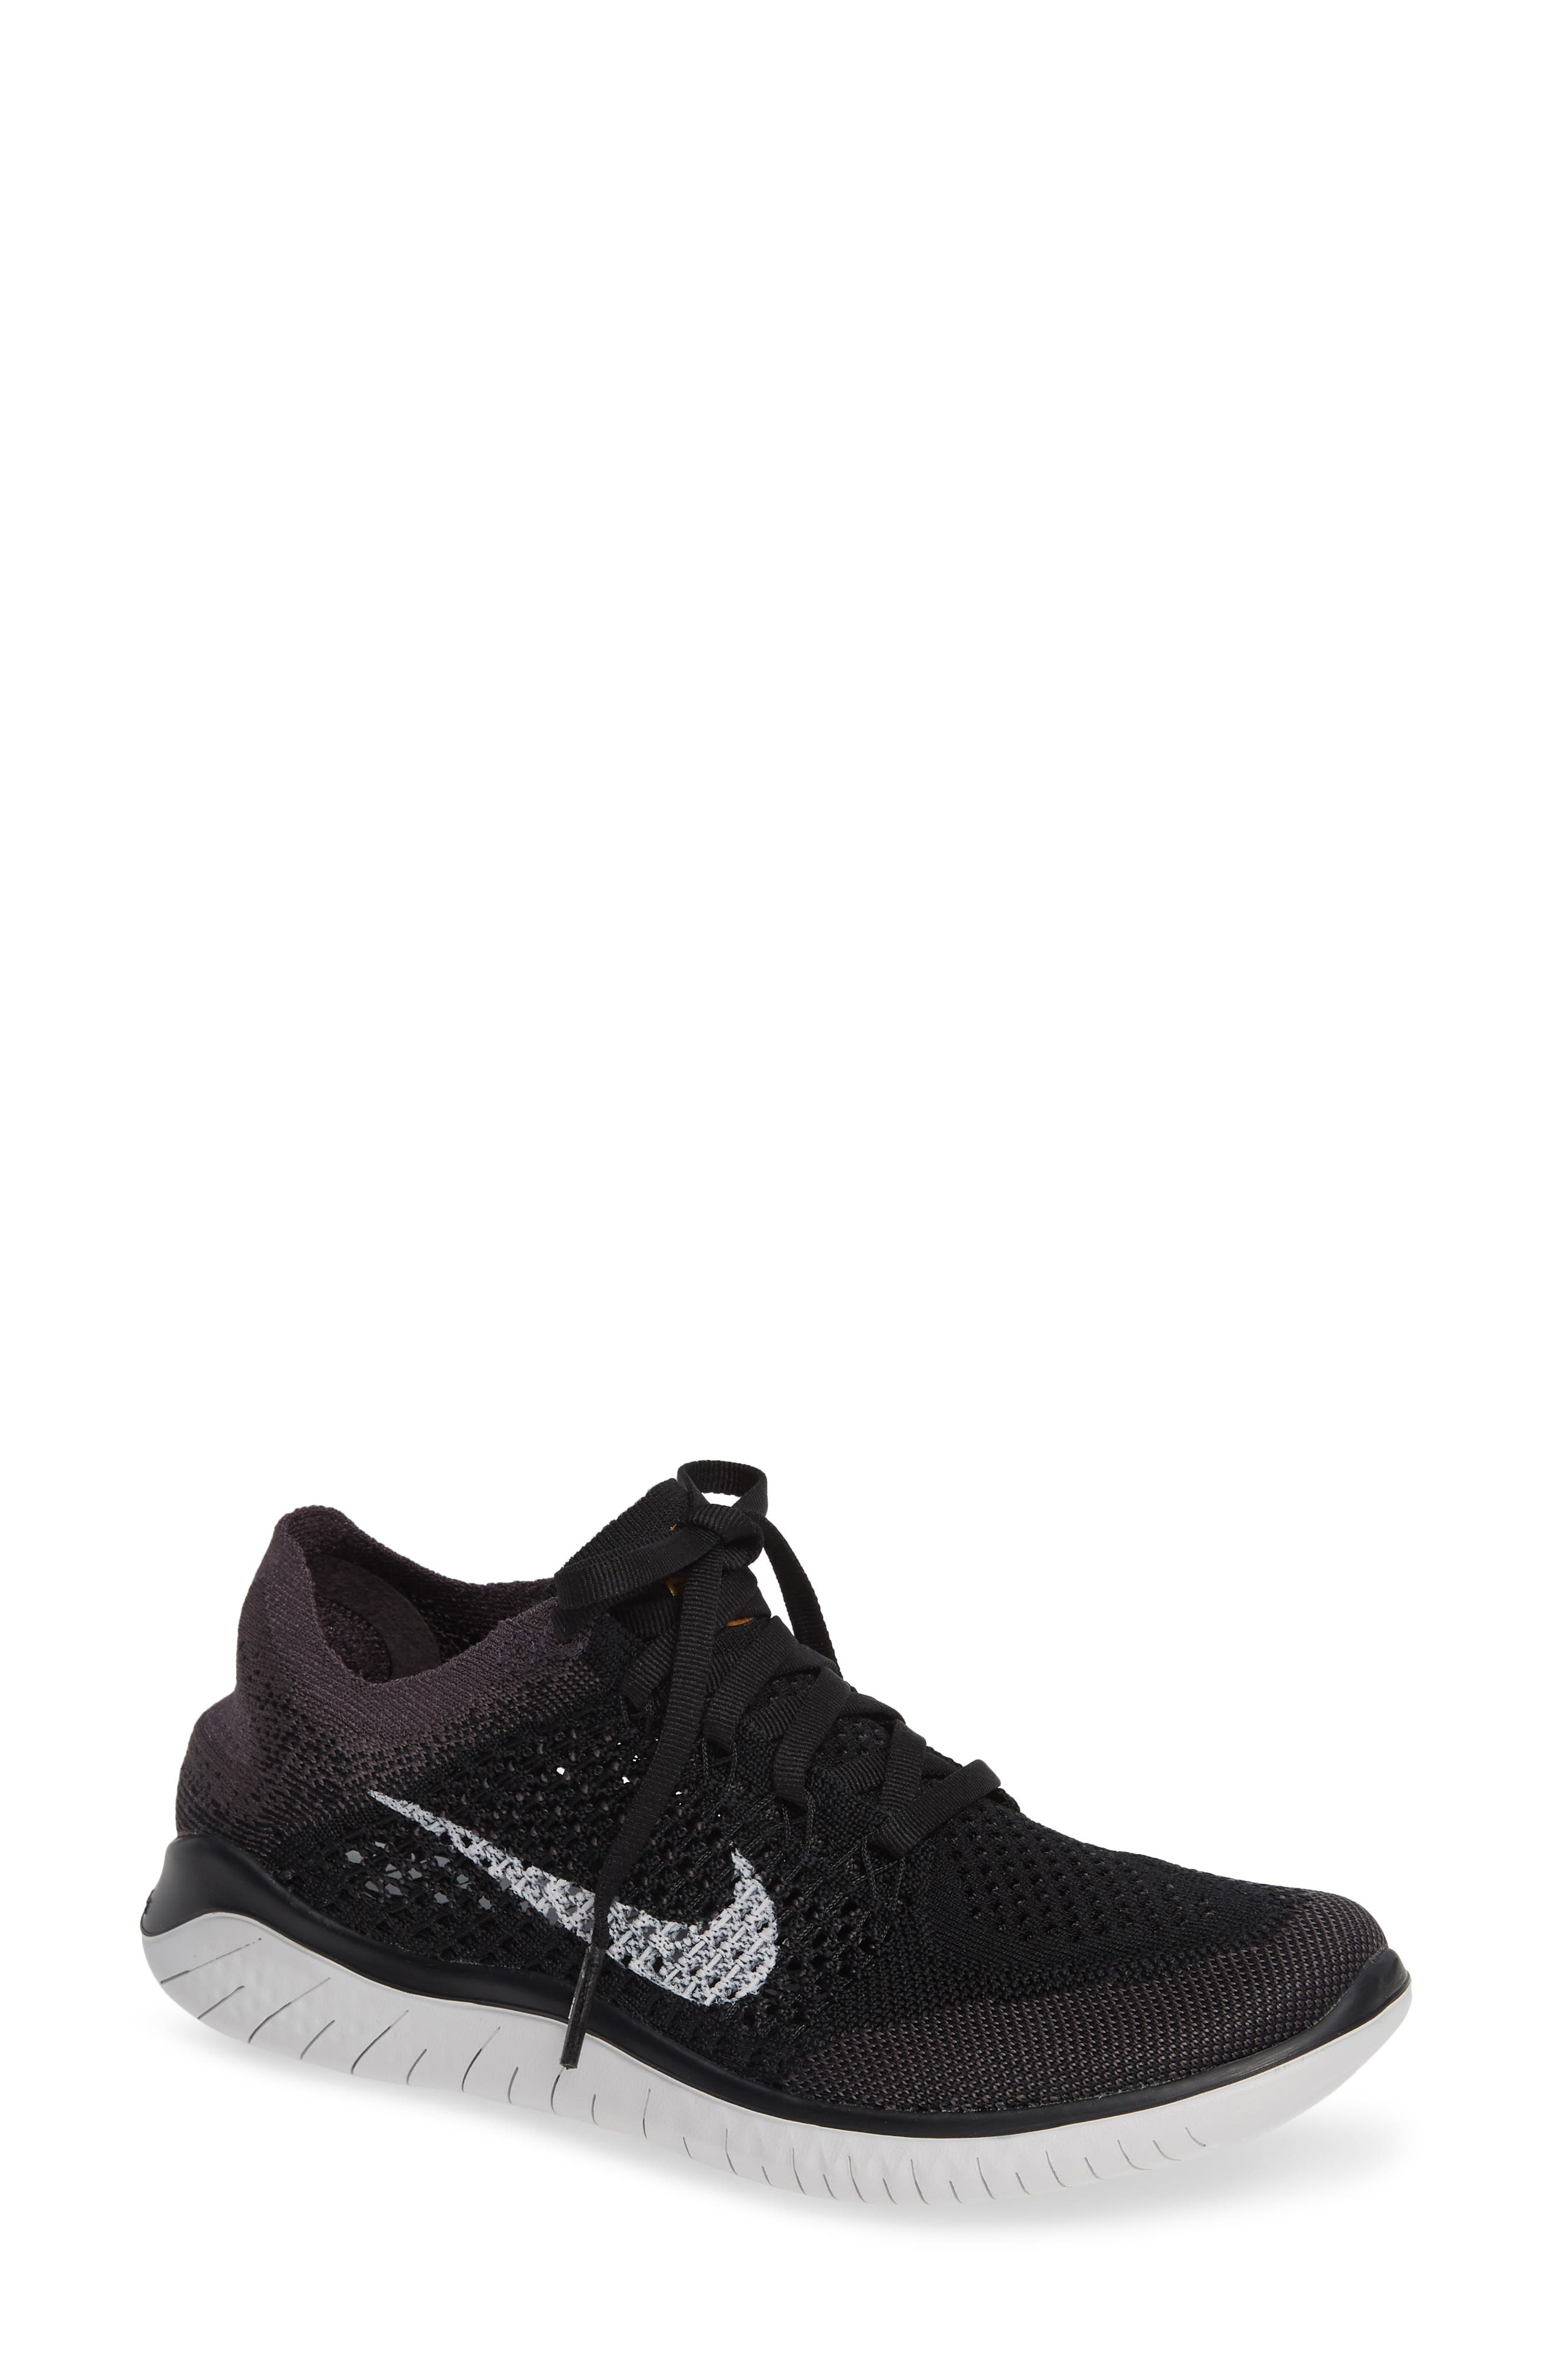 Free RN Flyknit 2018 Running Shoe,                         Main,                         color,